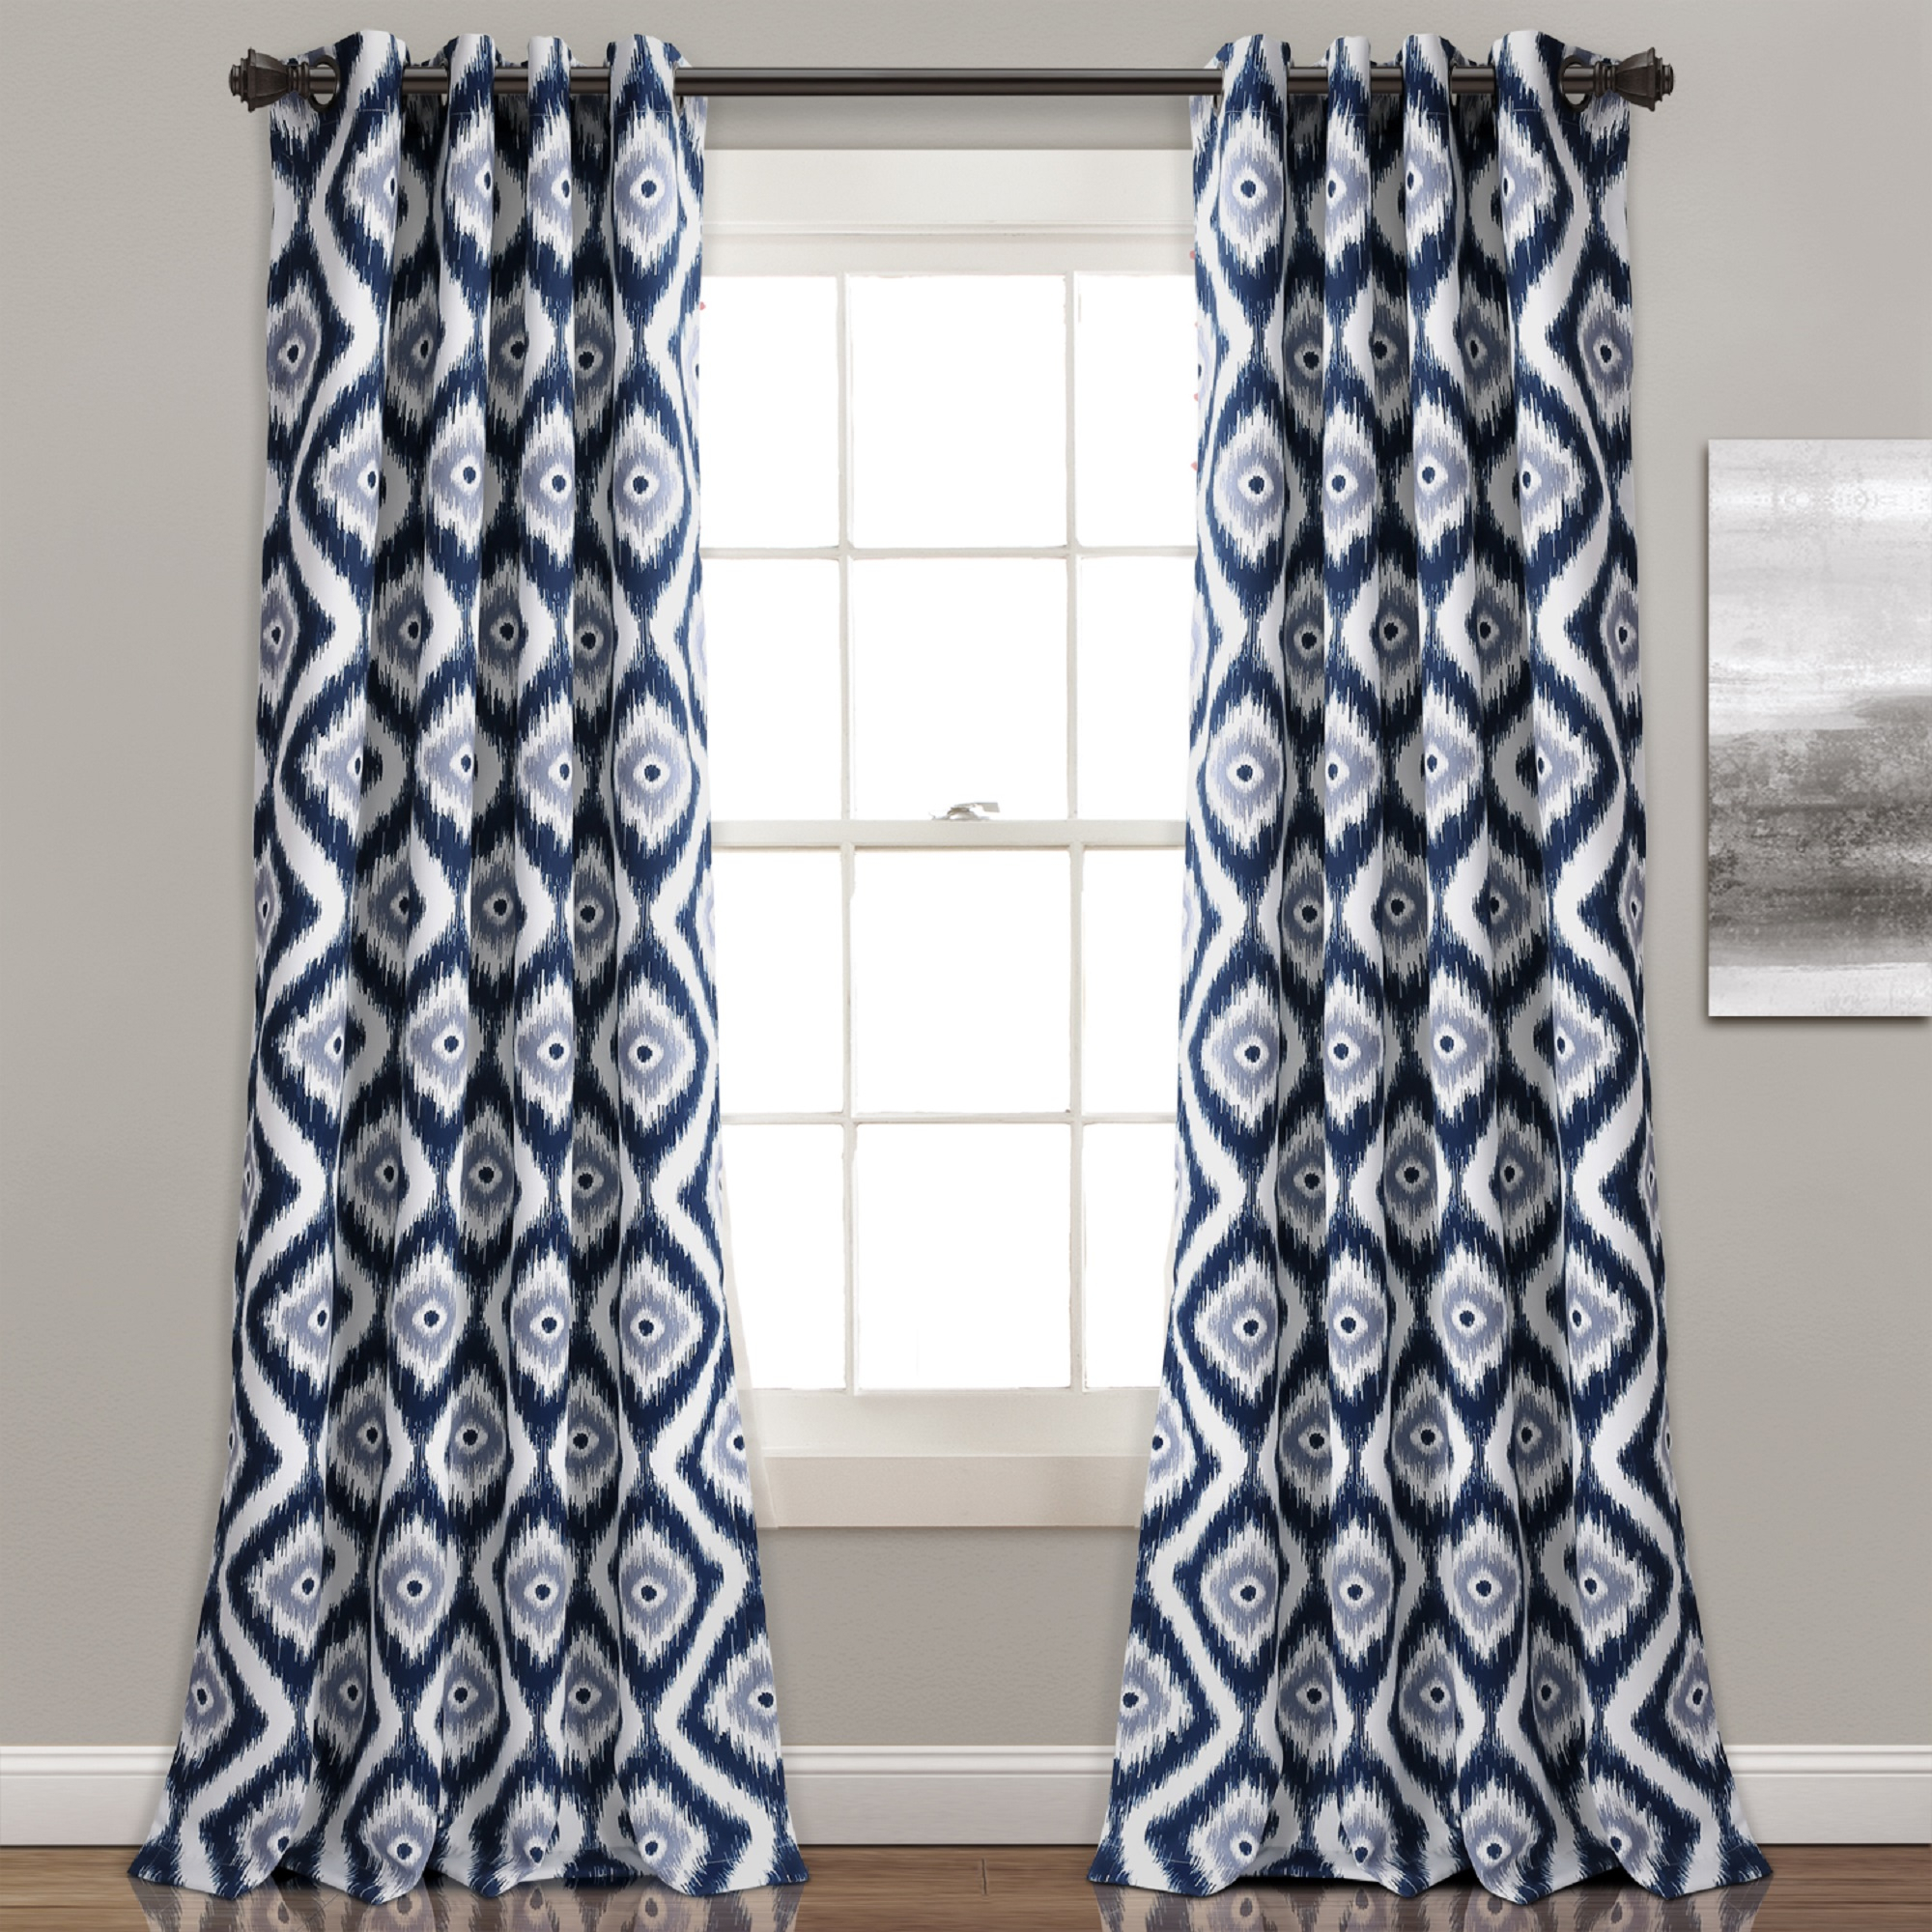 Details About Diamond Ikat Room Darkening Window Curtain Panel Pair, Navy In Room Darkening Window Curtain Panel Pairs (View 8 of 20)